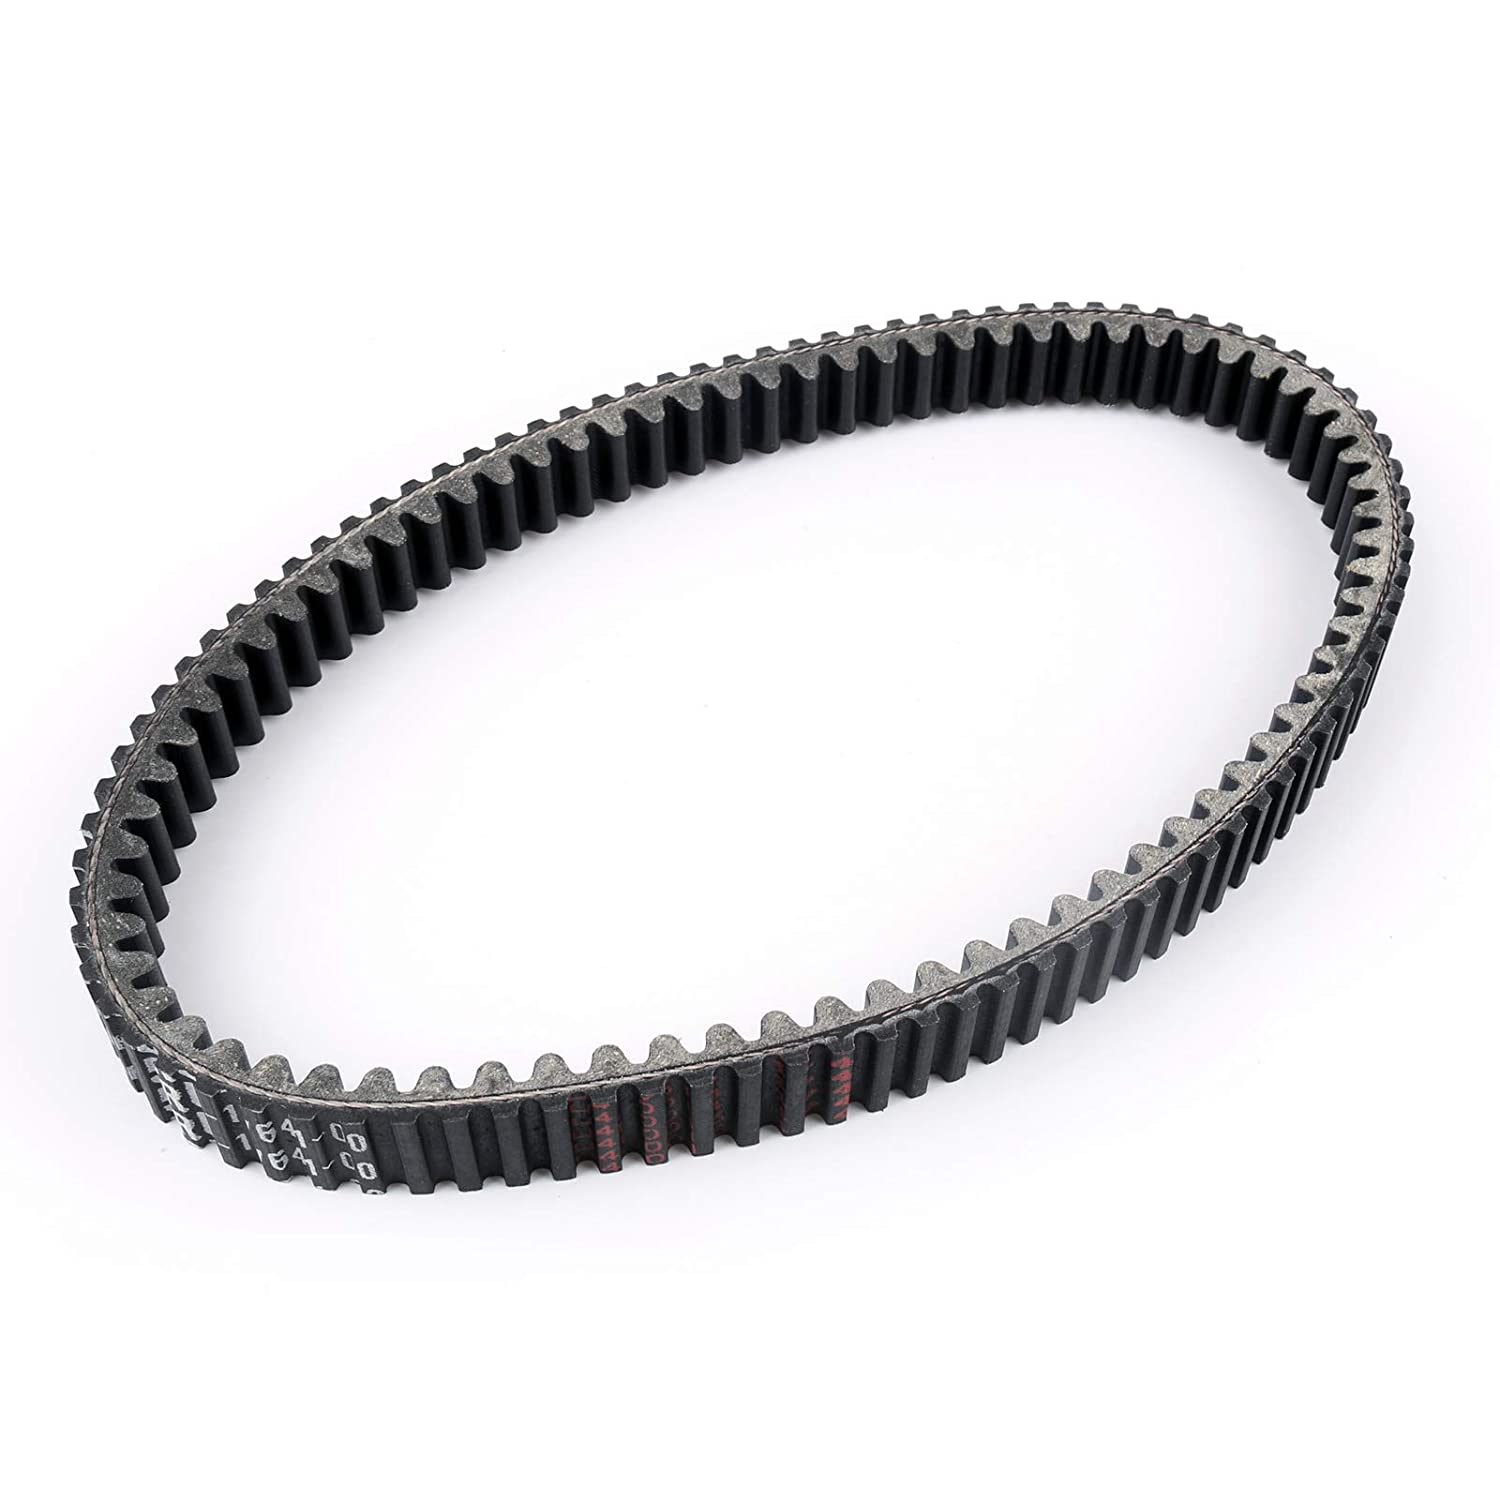 Areyourshop Premium Drive Belt For Yamaha YP400 Majesty 2004-2014 YP400 Grand Majesty